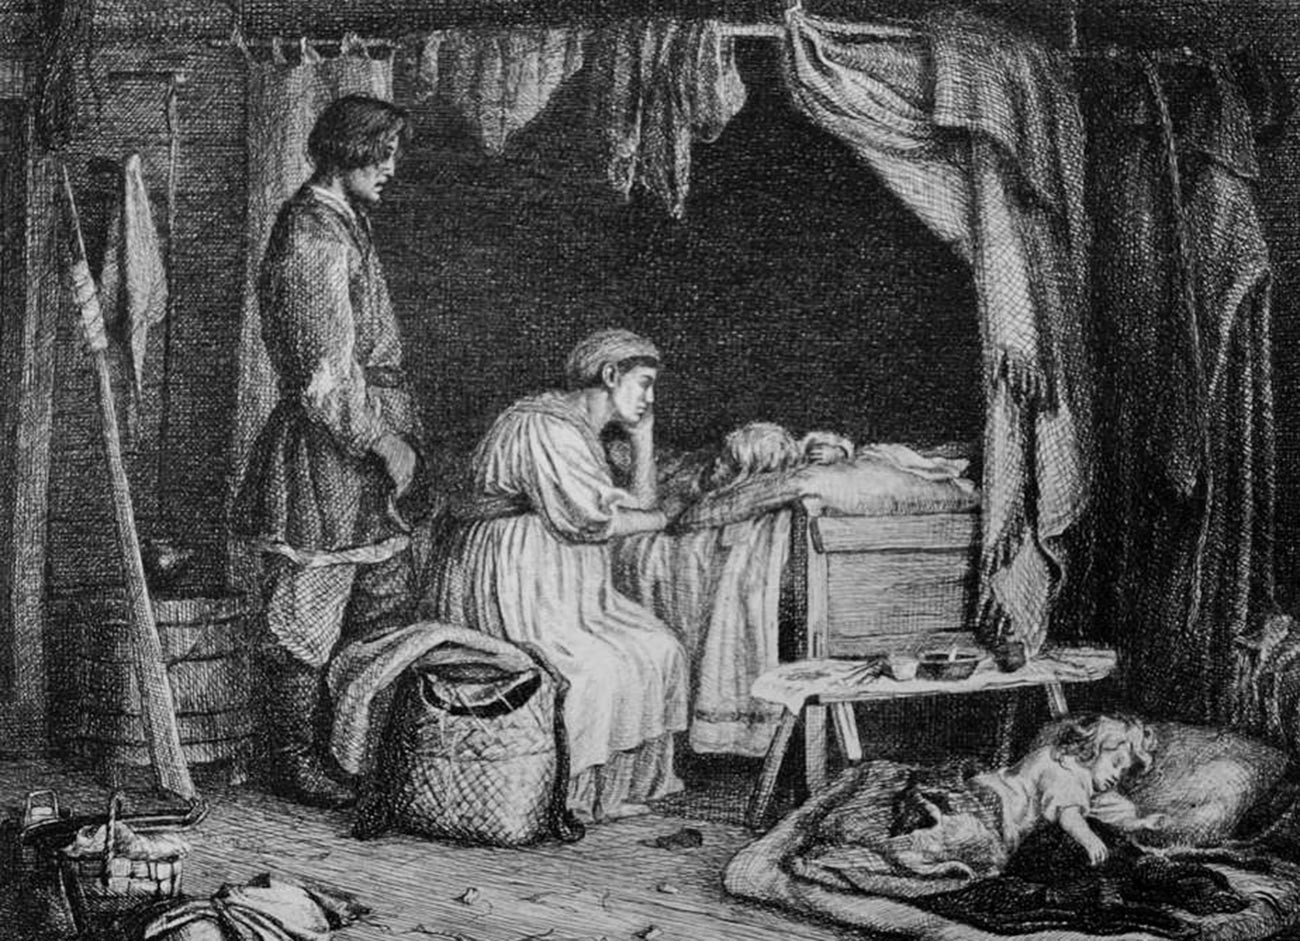 Most peasant families in Russia were excruciatingly poor. Many children were born, but many died in infancy.